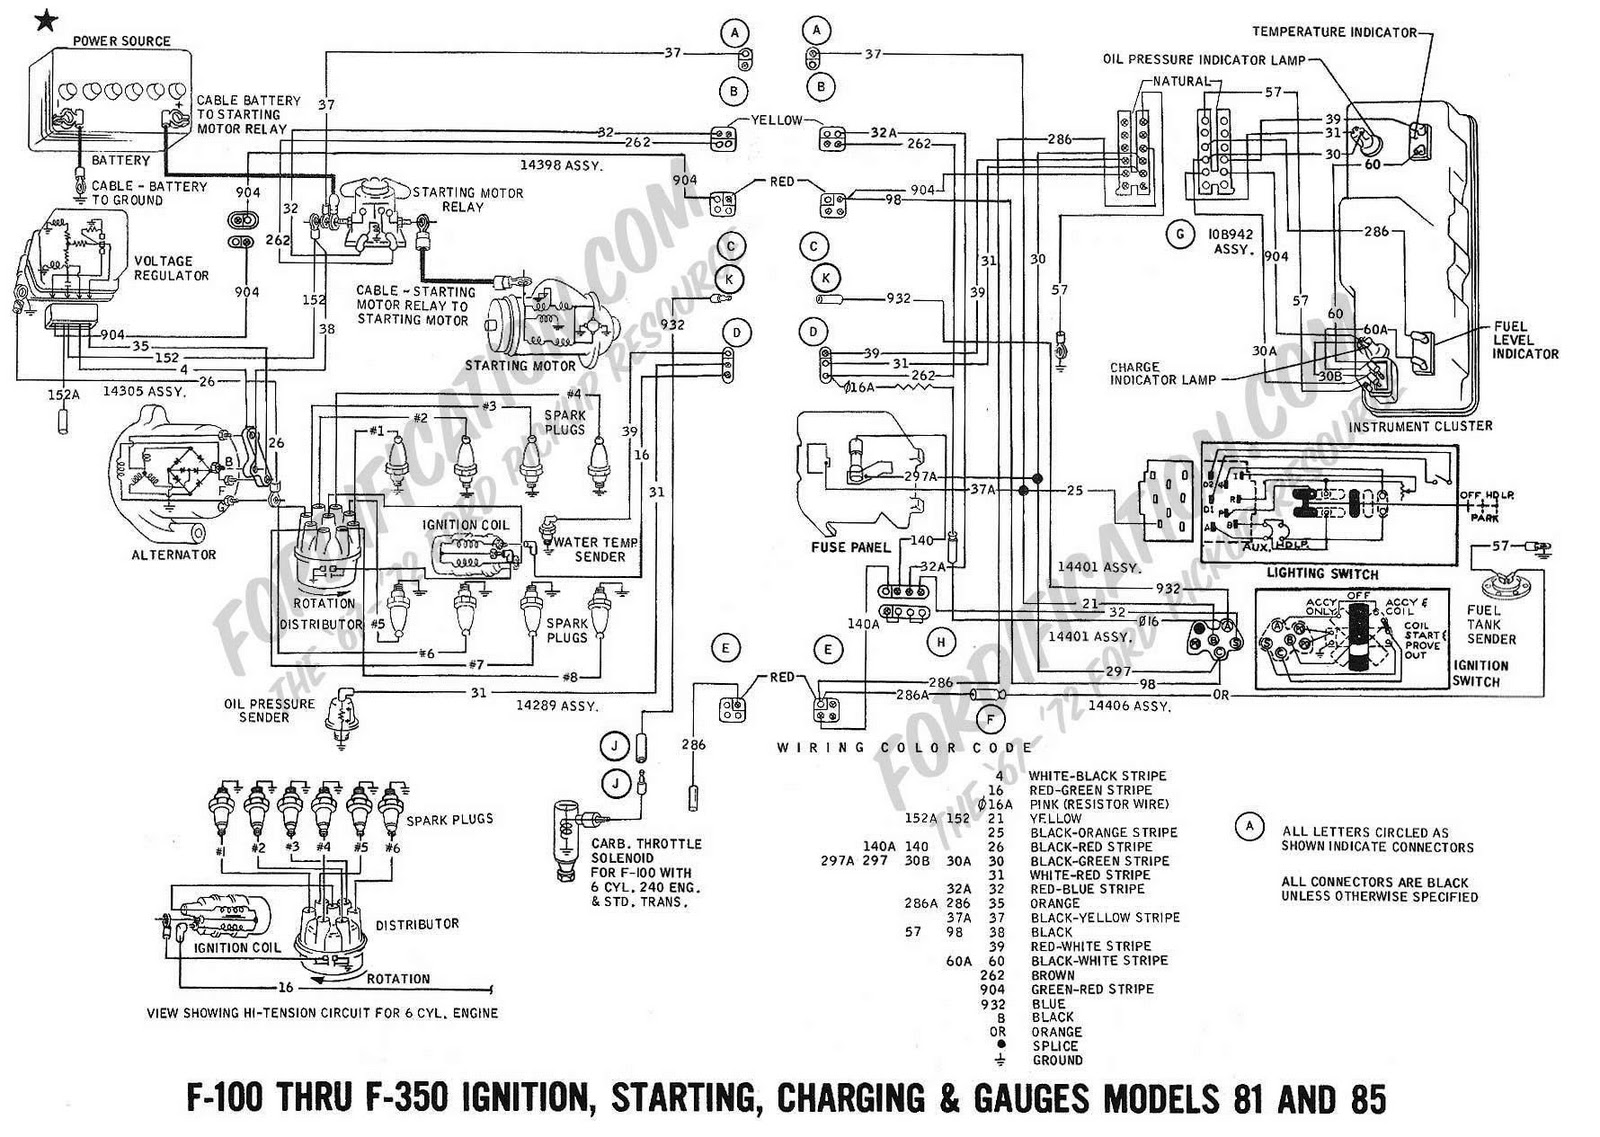 Terrific 1968 Ford Falcon Wiring Diagram General Wiring Diagram Data Wiring Cloud Faunaidewilluminateatxorg